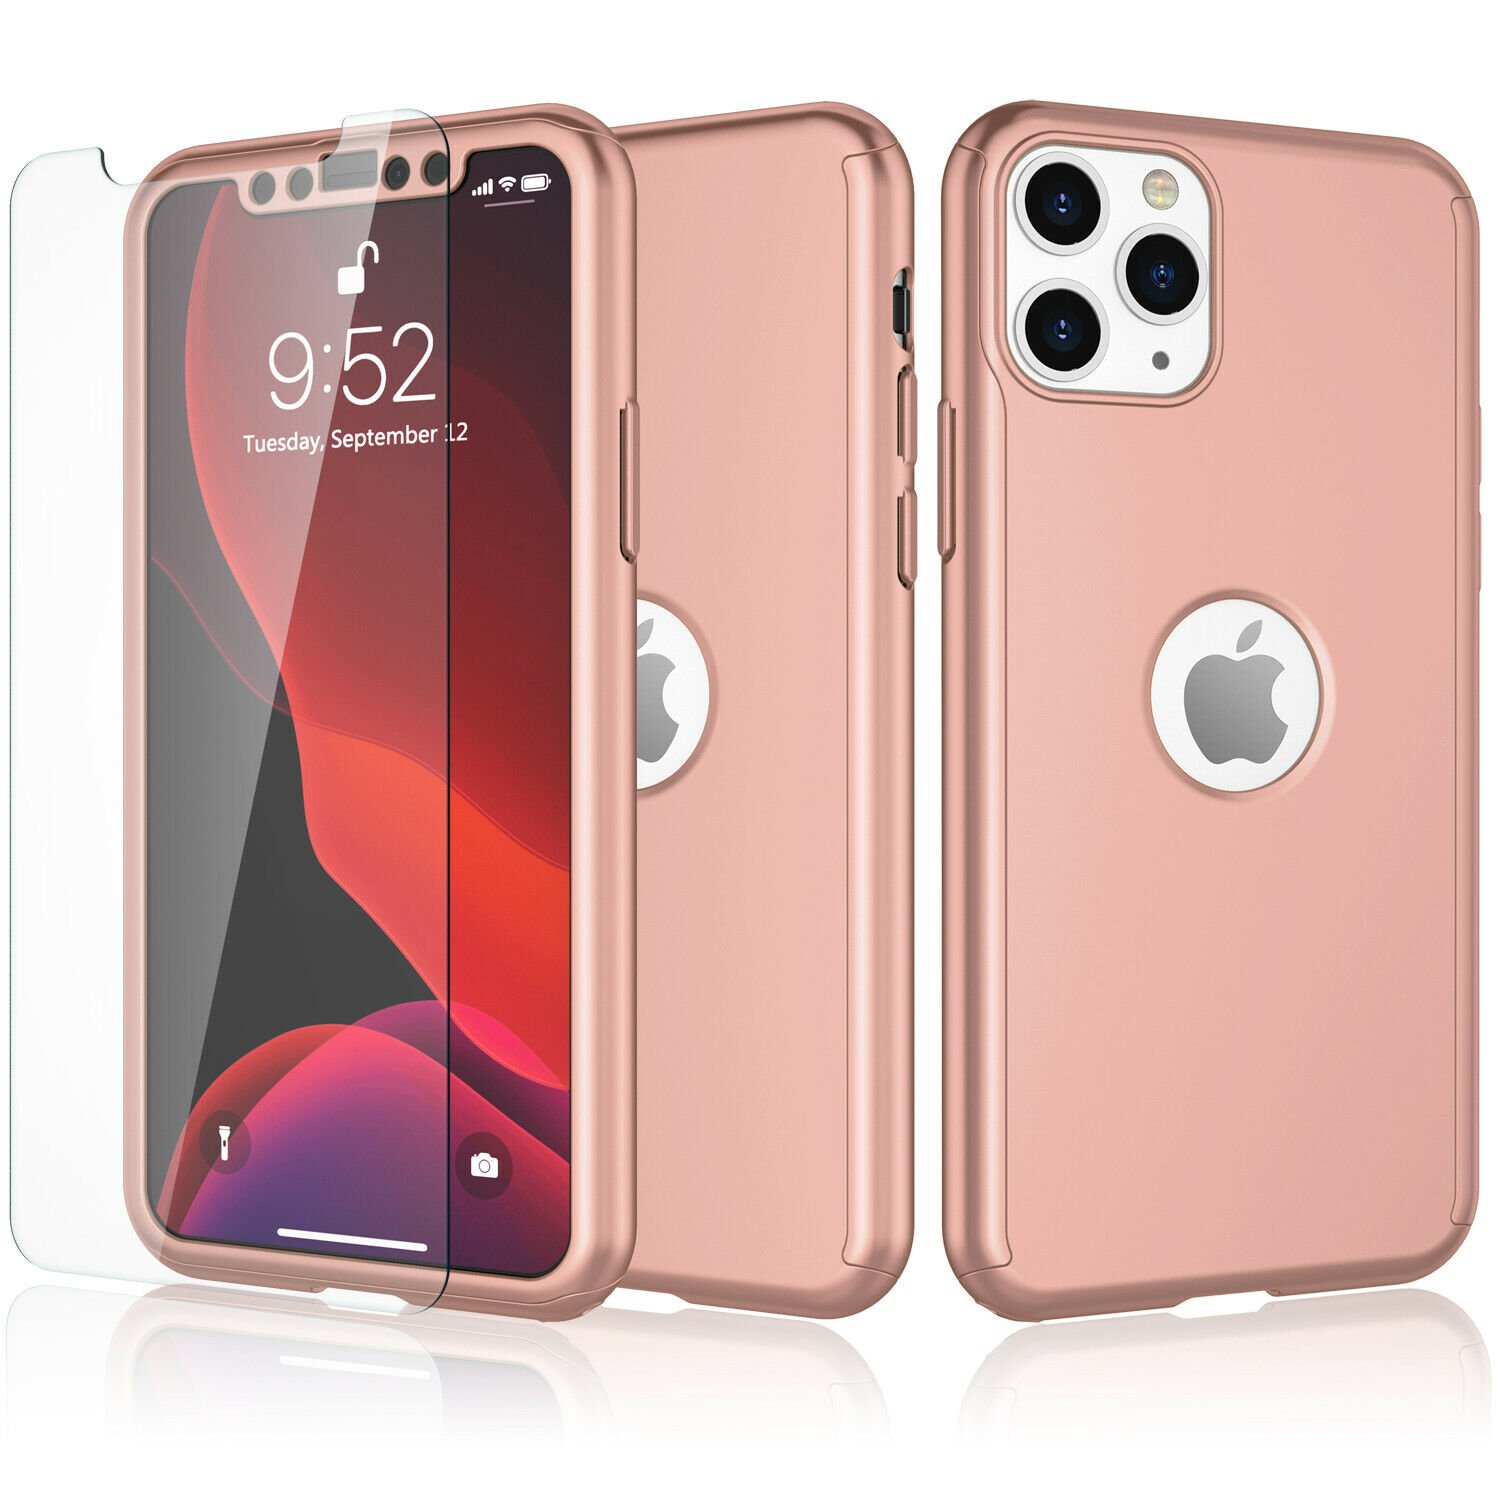 UNA SELLER For iPhone 11 360° Case Cover with Tempered Glass Screen Protector #Rose Gold